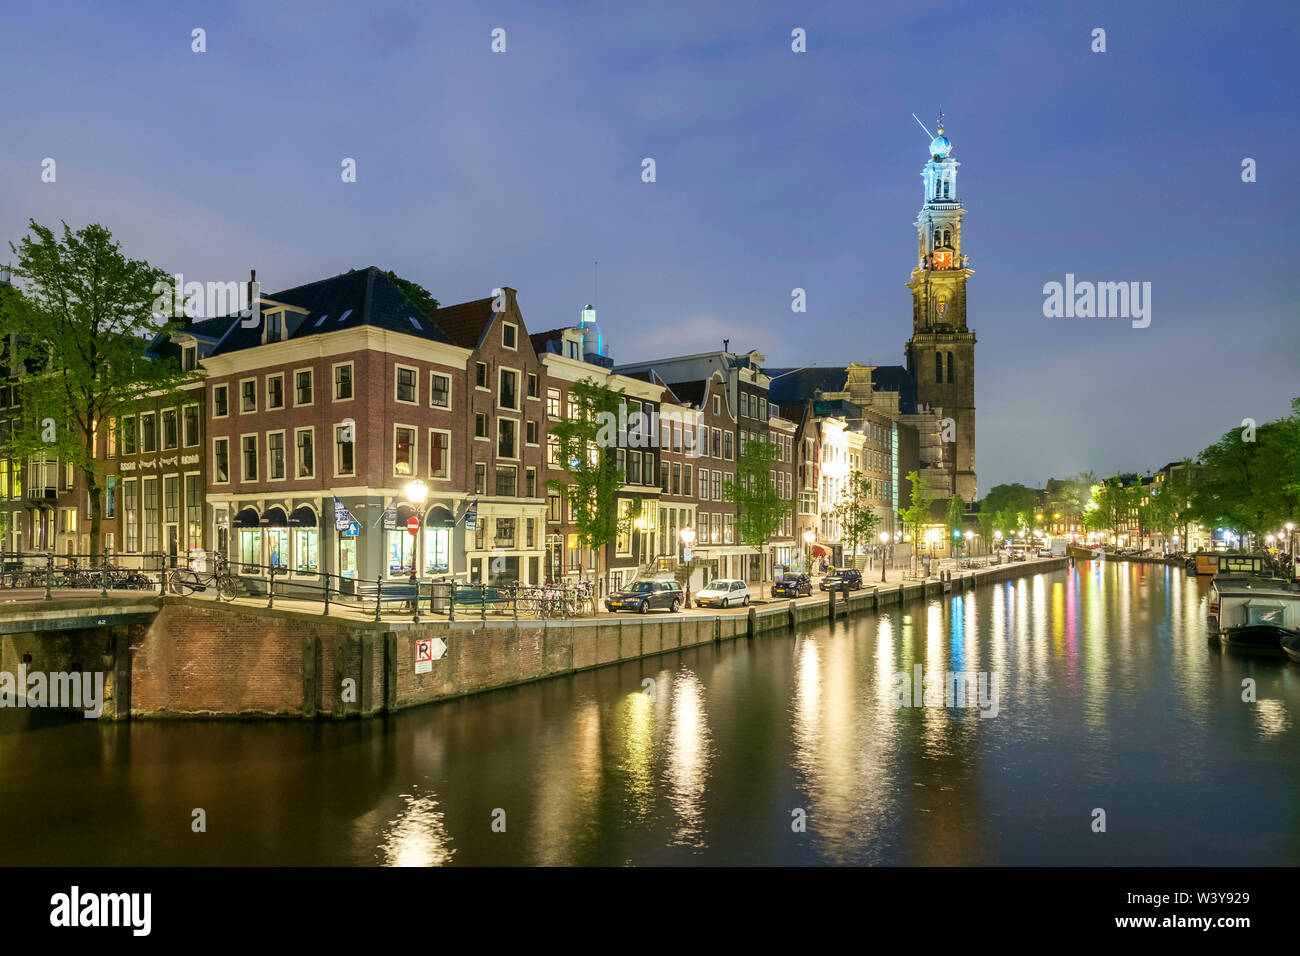 Intersection of Prinsengracht and Leidsegracht canals and tower of Westerkerk church at night, Amsterdam, North Holland, Netherlands - Stock Image